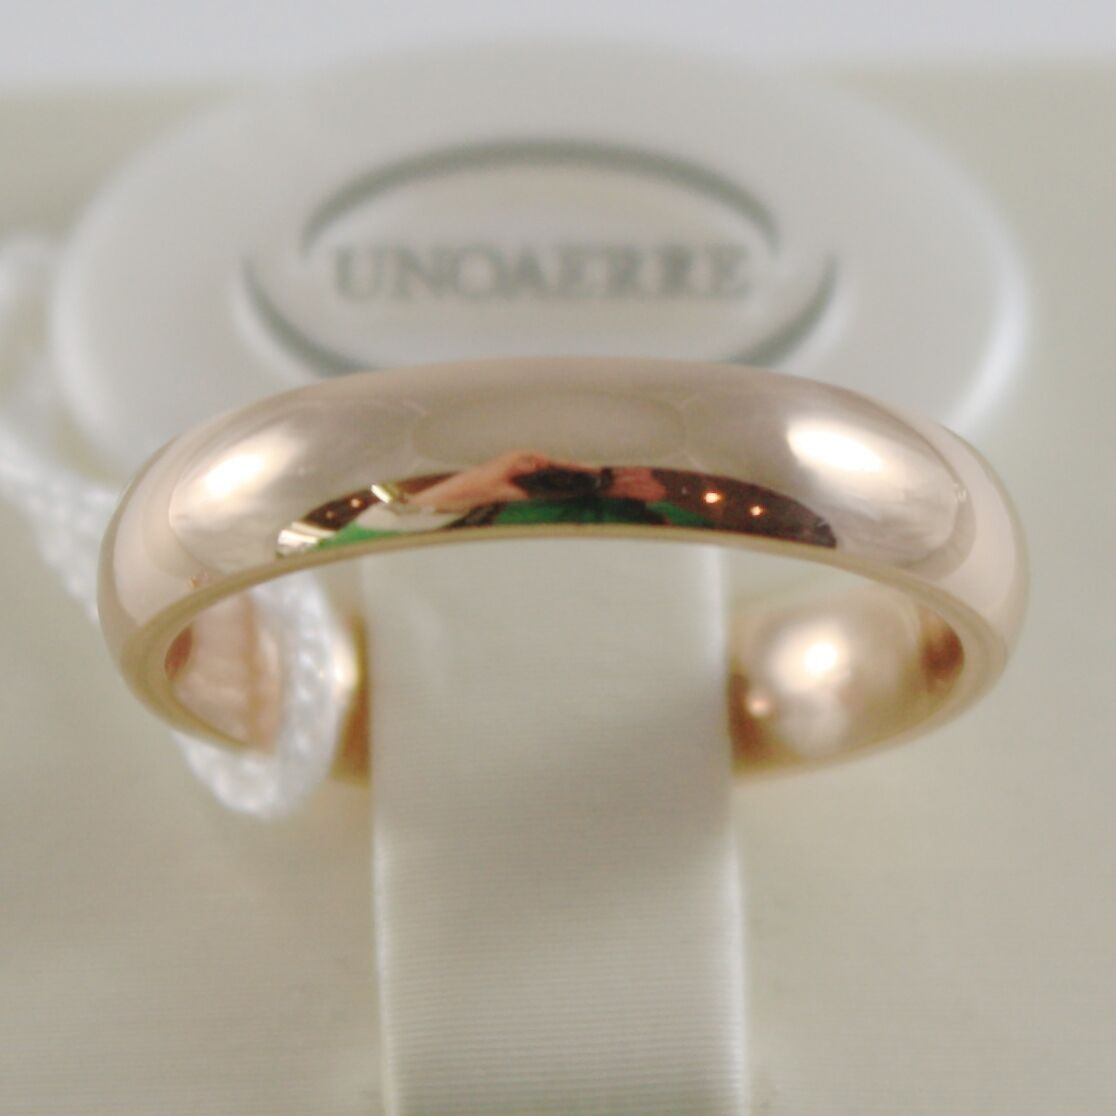 18K YELLOW GOLD WEDDING BAND UNOAERRE COMFORT RING MARRIAGE 4 MM, MADE IN ITALY